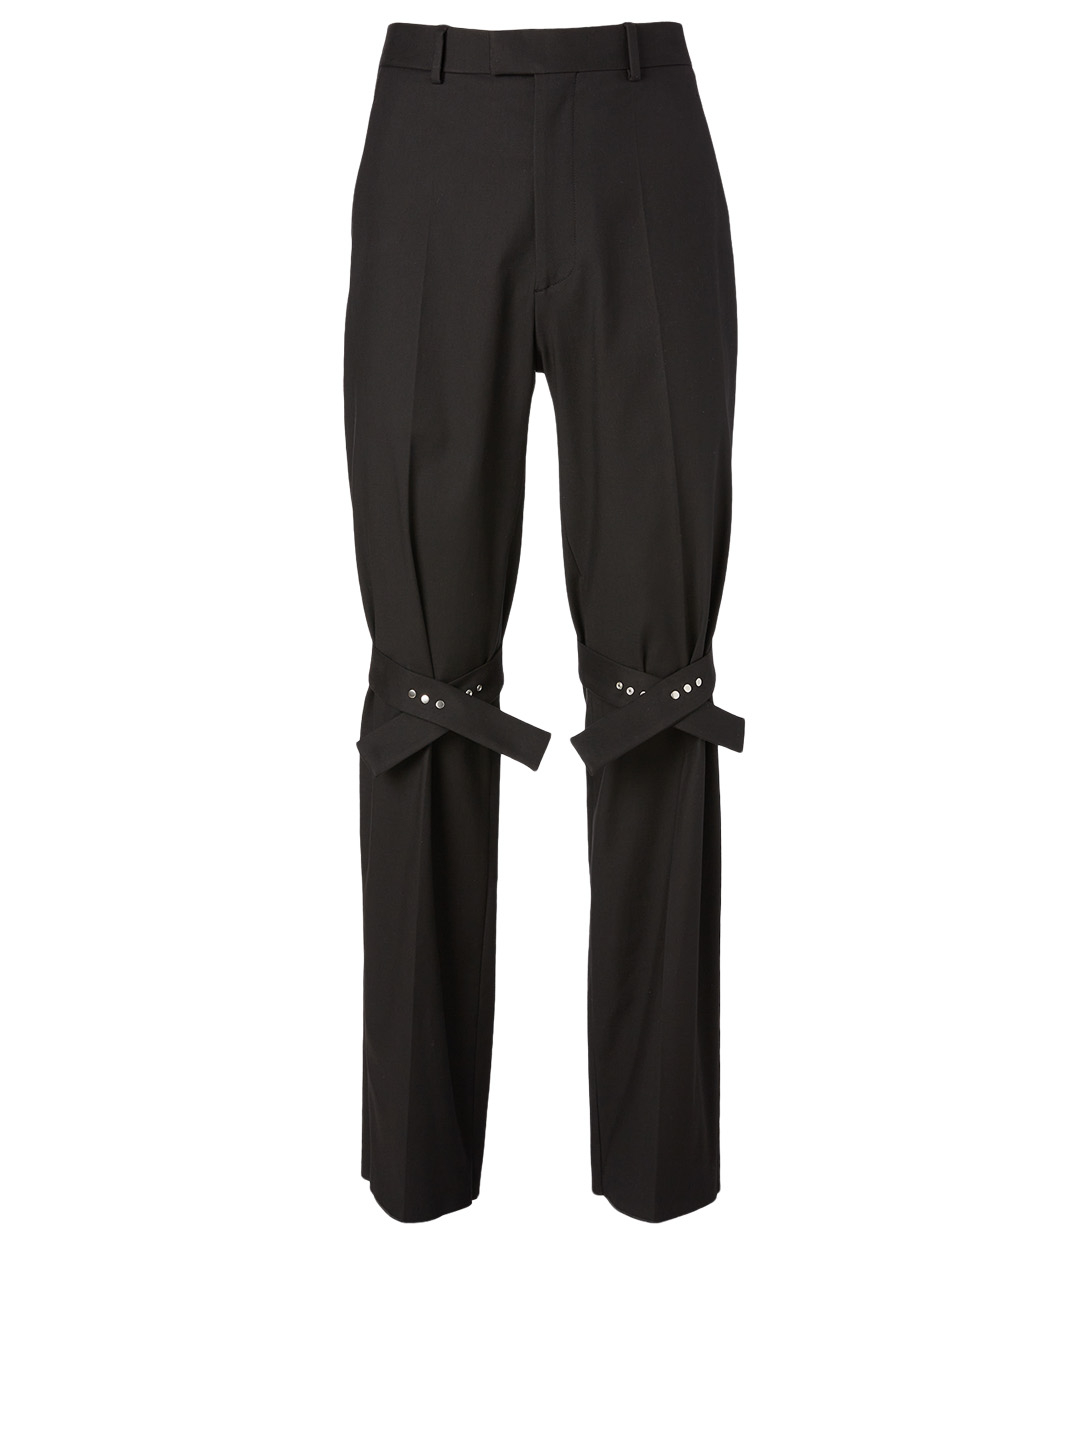 BOTTEGA VENETA Cotton Gabardine Pants Men's Black